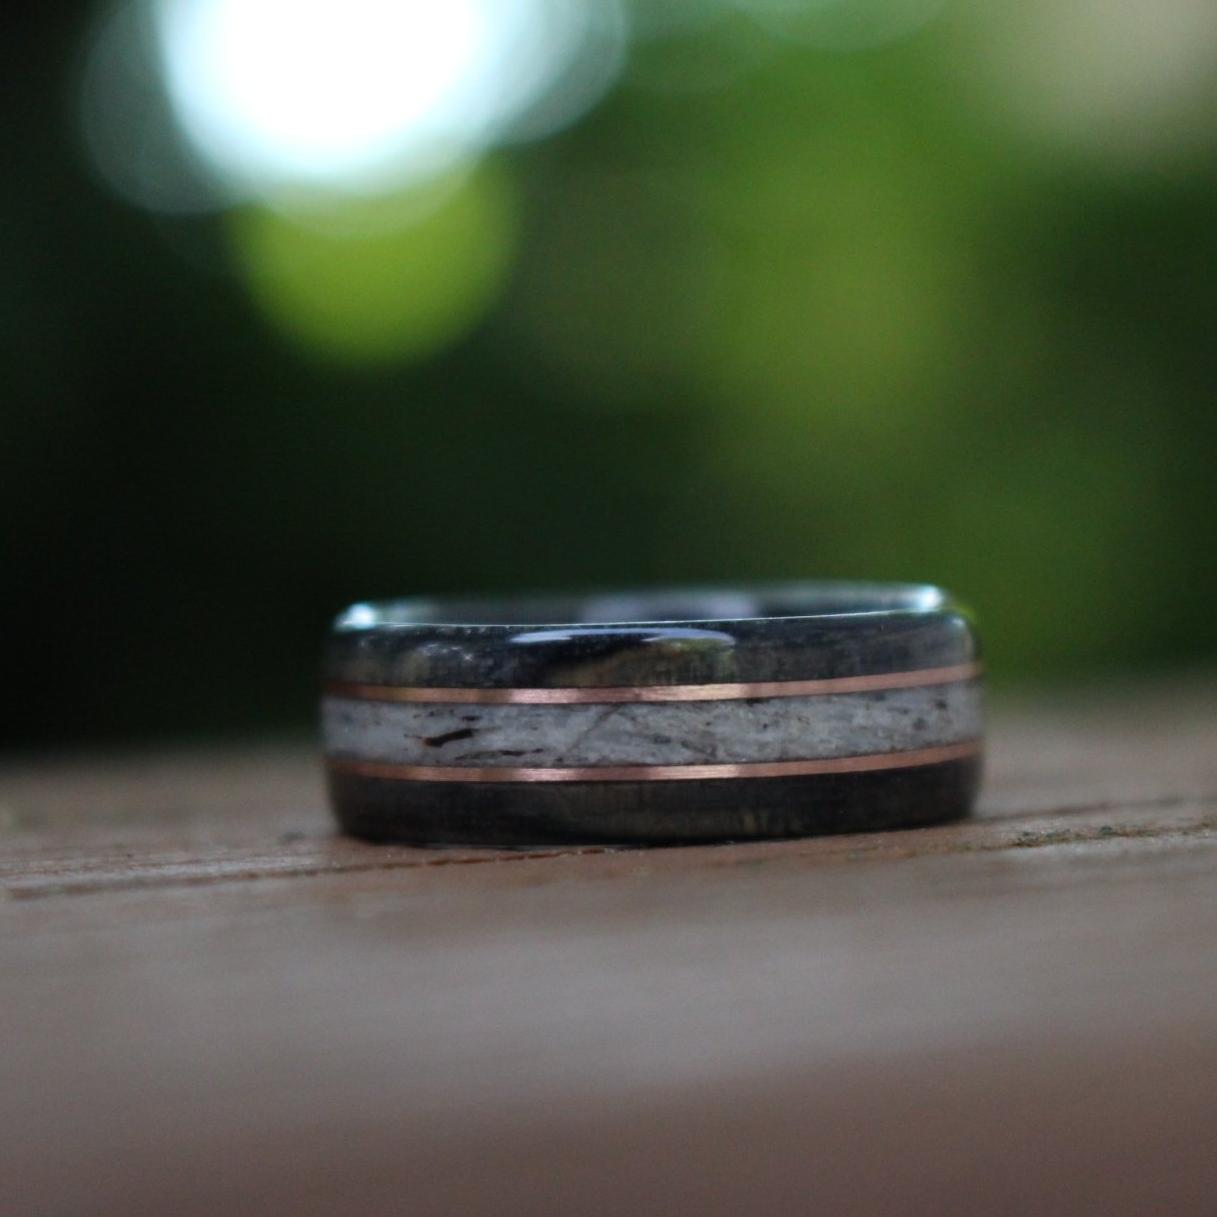 Rings - Weathered Whiskey Barrel Wood Wedding Ring With Elk Antler And Double Gold Inlays